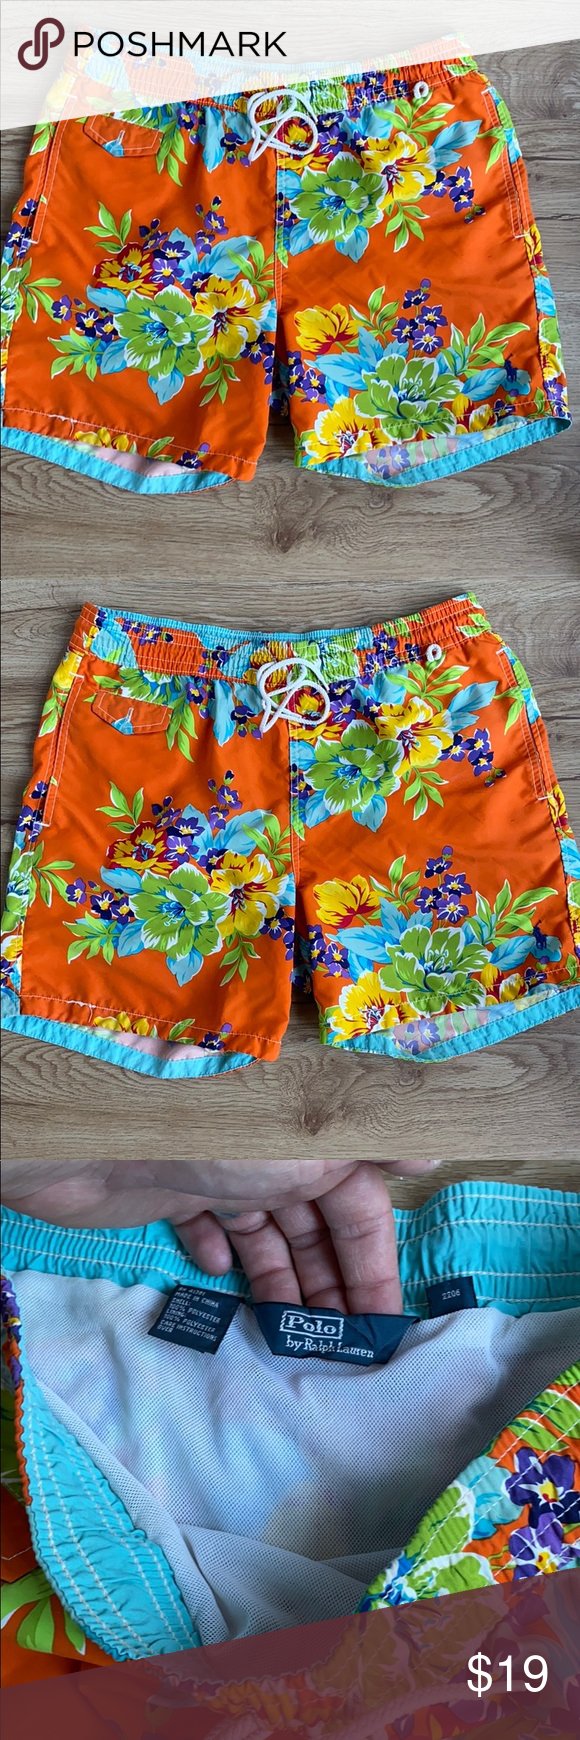 Polo By Ralph Lauren Bathing Suit Polo By Ralph Lauren Bathing Suit Men's medium Polo by Ralph Lauren Swim Swim Trunks #mensbathingsuits Polo By Ralph Lauren Bathing Suit Polo By Ralph Lauren Bathing Suit Men's medium Polo by Ralph Lauren Swim Swim Trunks #mensbathingsuits